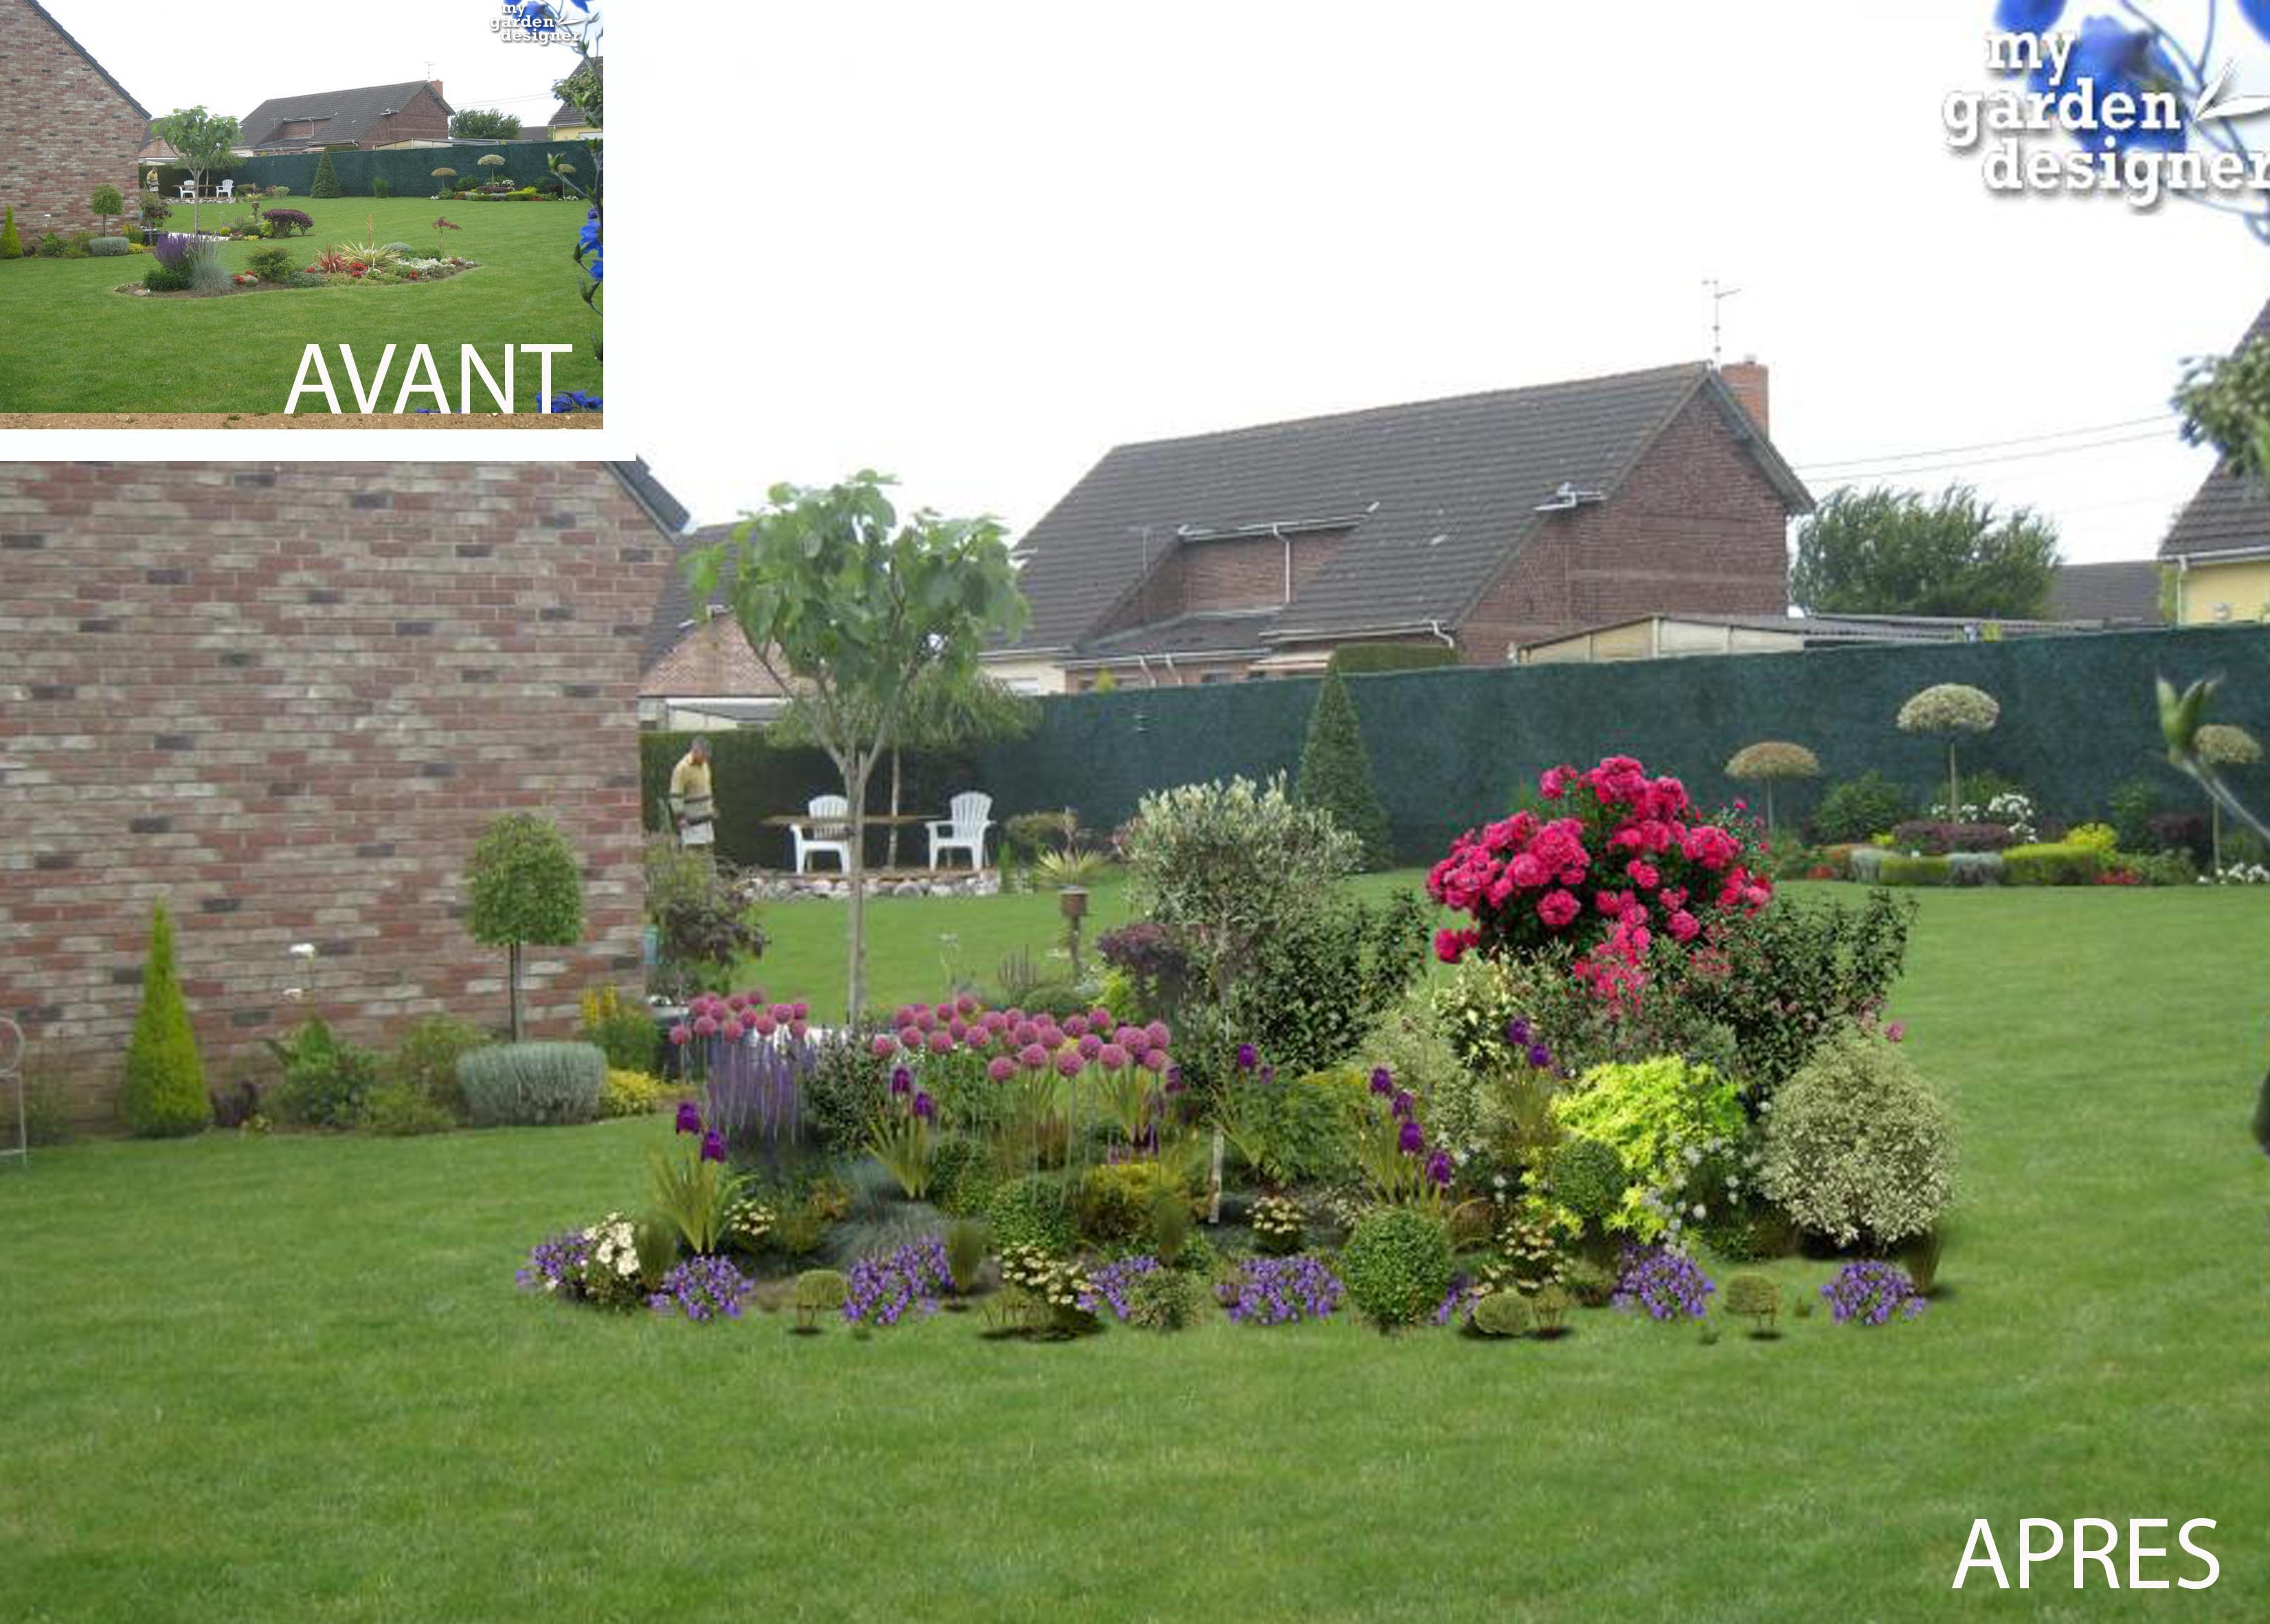 Am nager un massif de plantes monjardin for Amenager mon jardin